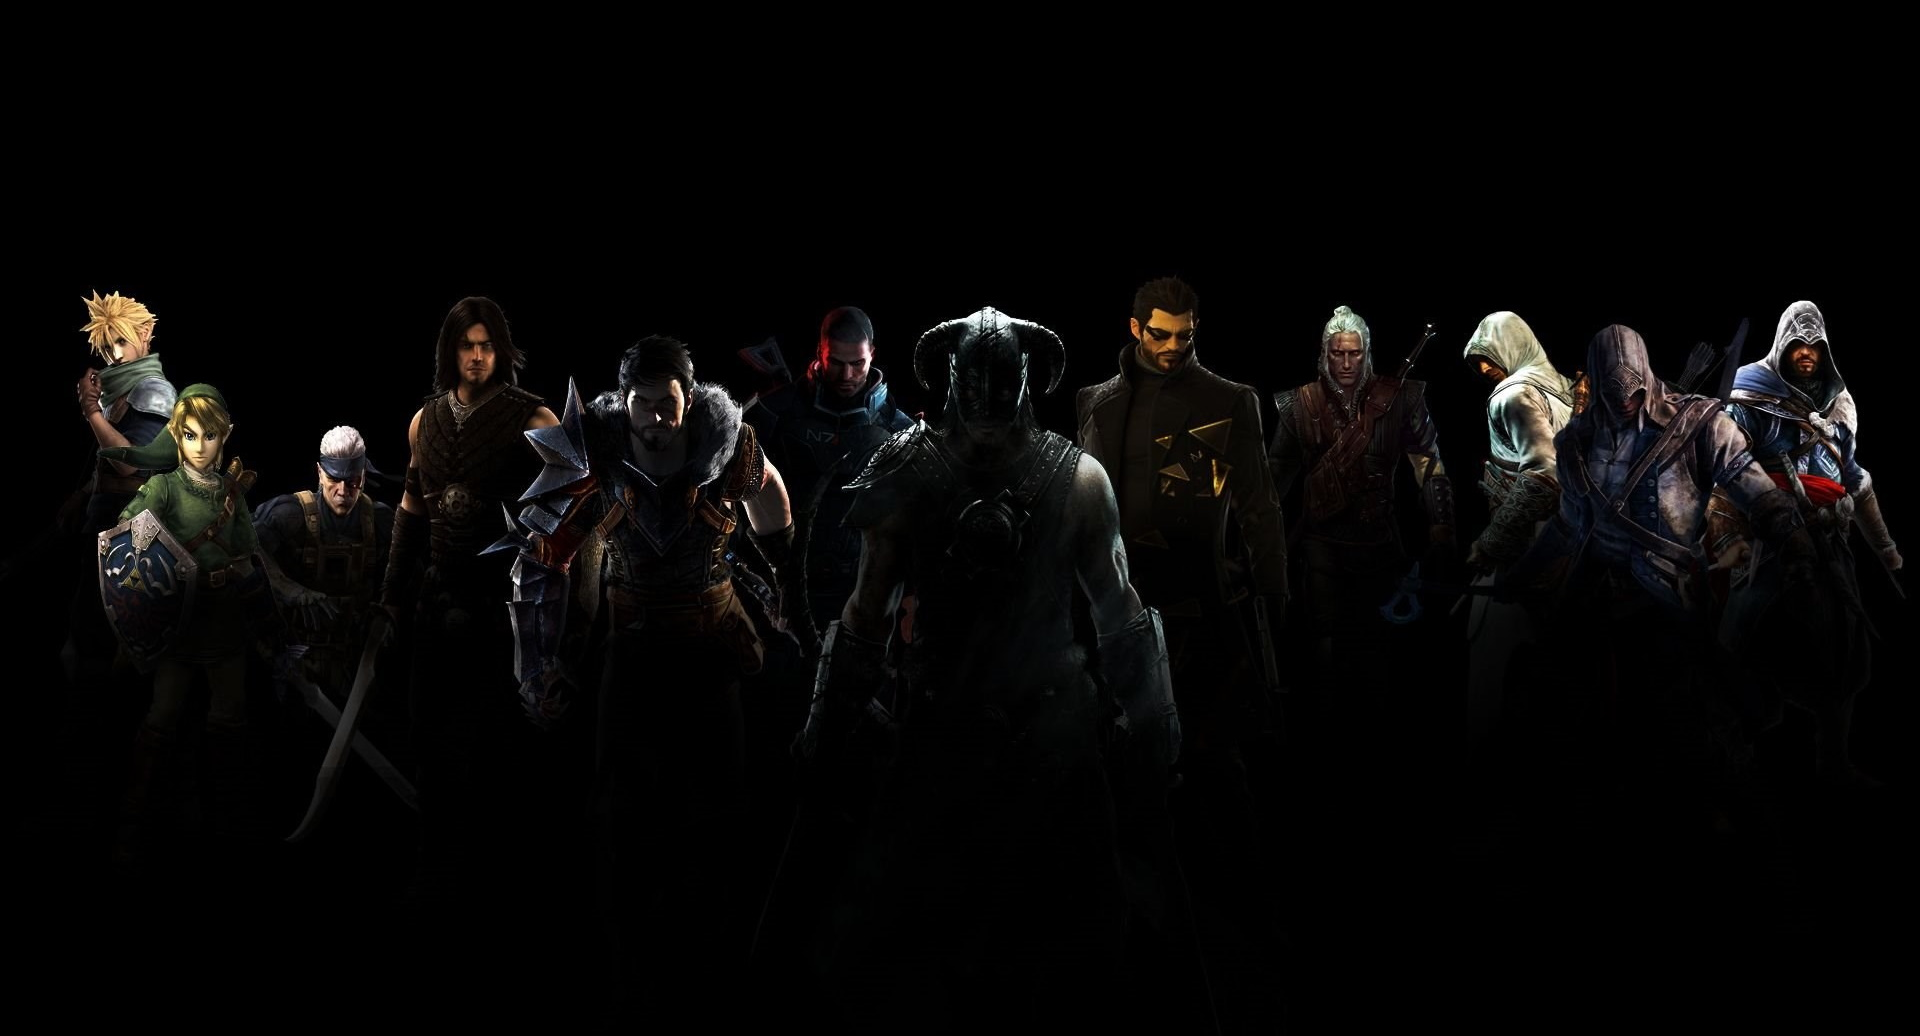 1057416_video-game-characters-wallpapers-wallpapers-zone_1920x1